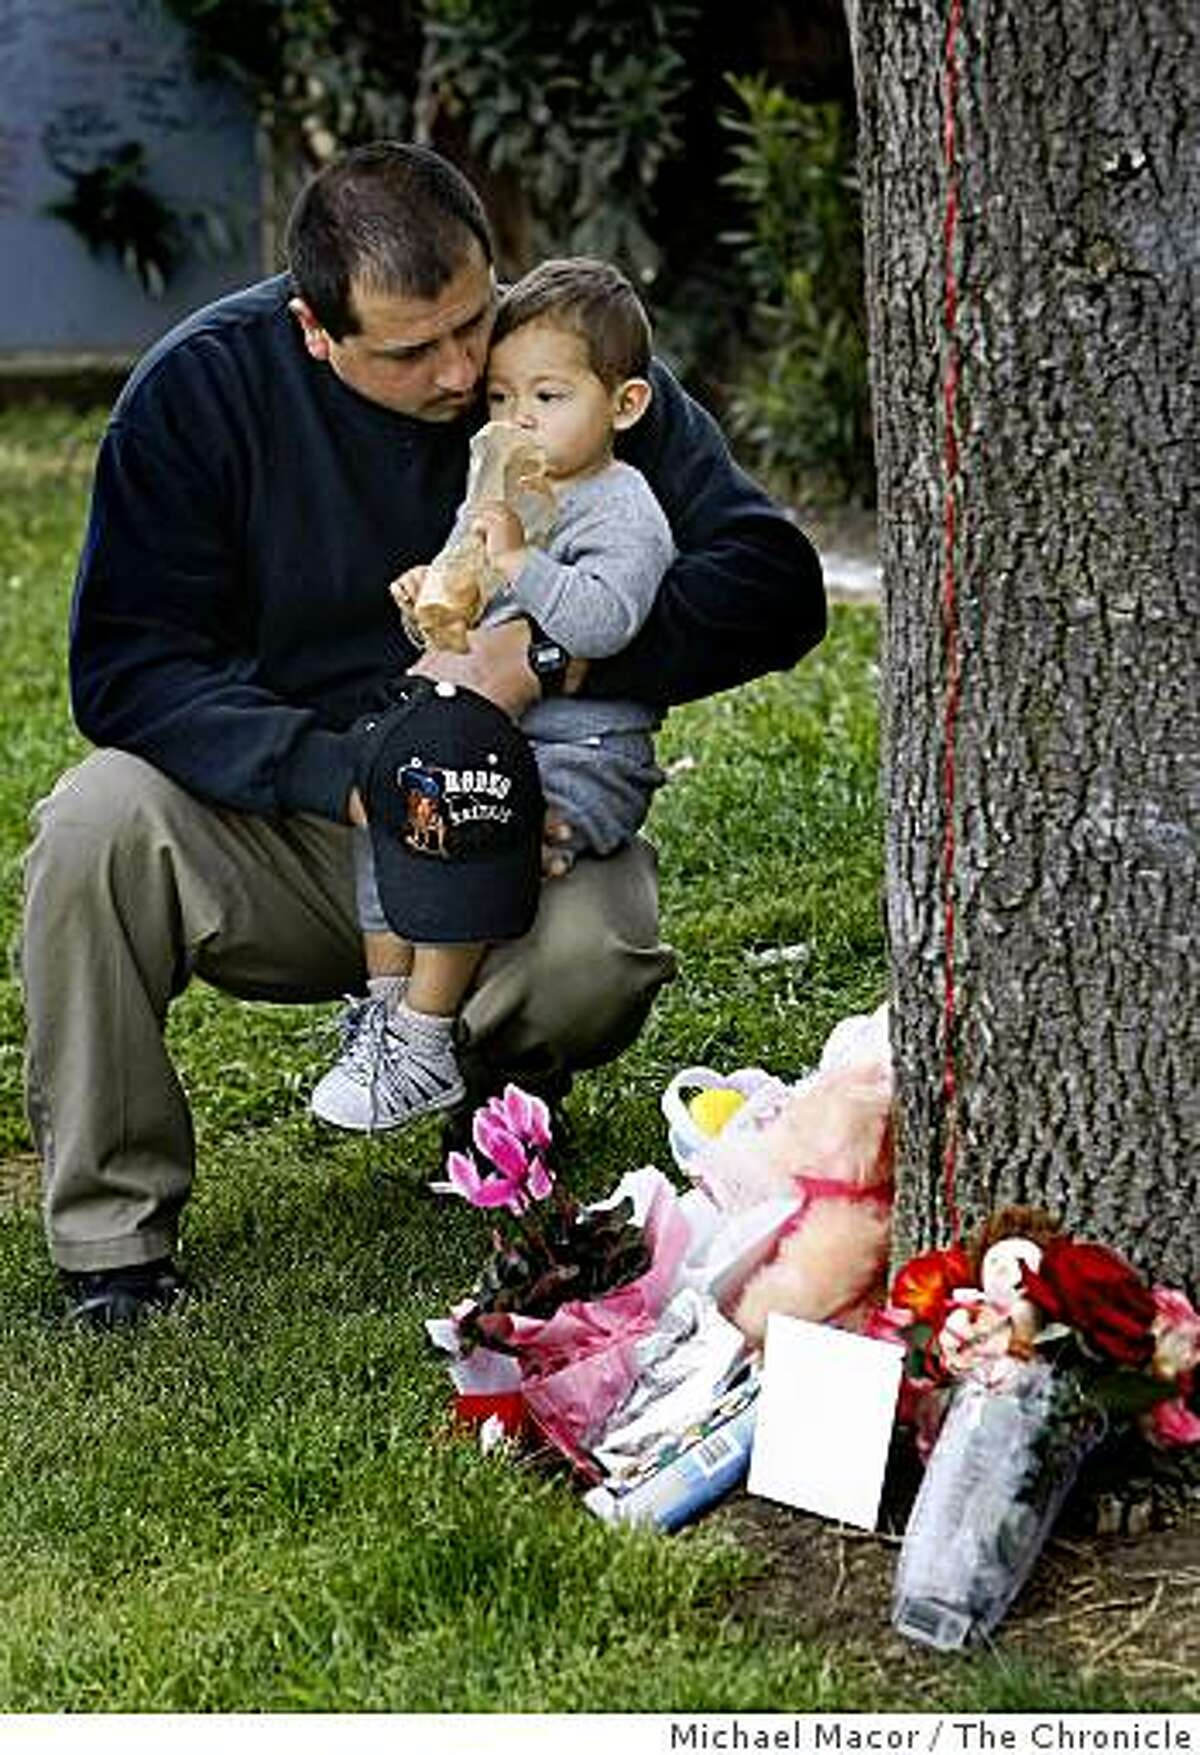 Artemie Pimentel of Tracy, holds his son Guadalupe, 3, at the memorial to Sandra Cantu, outside the trailer park where she was last seen.